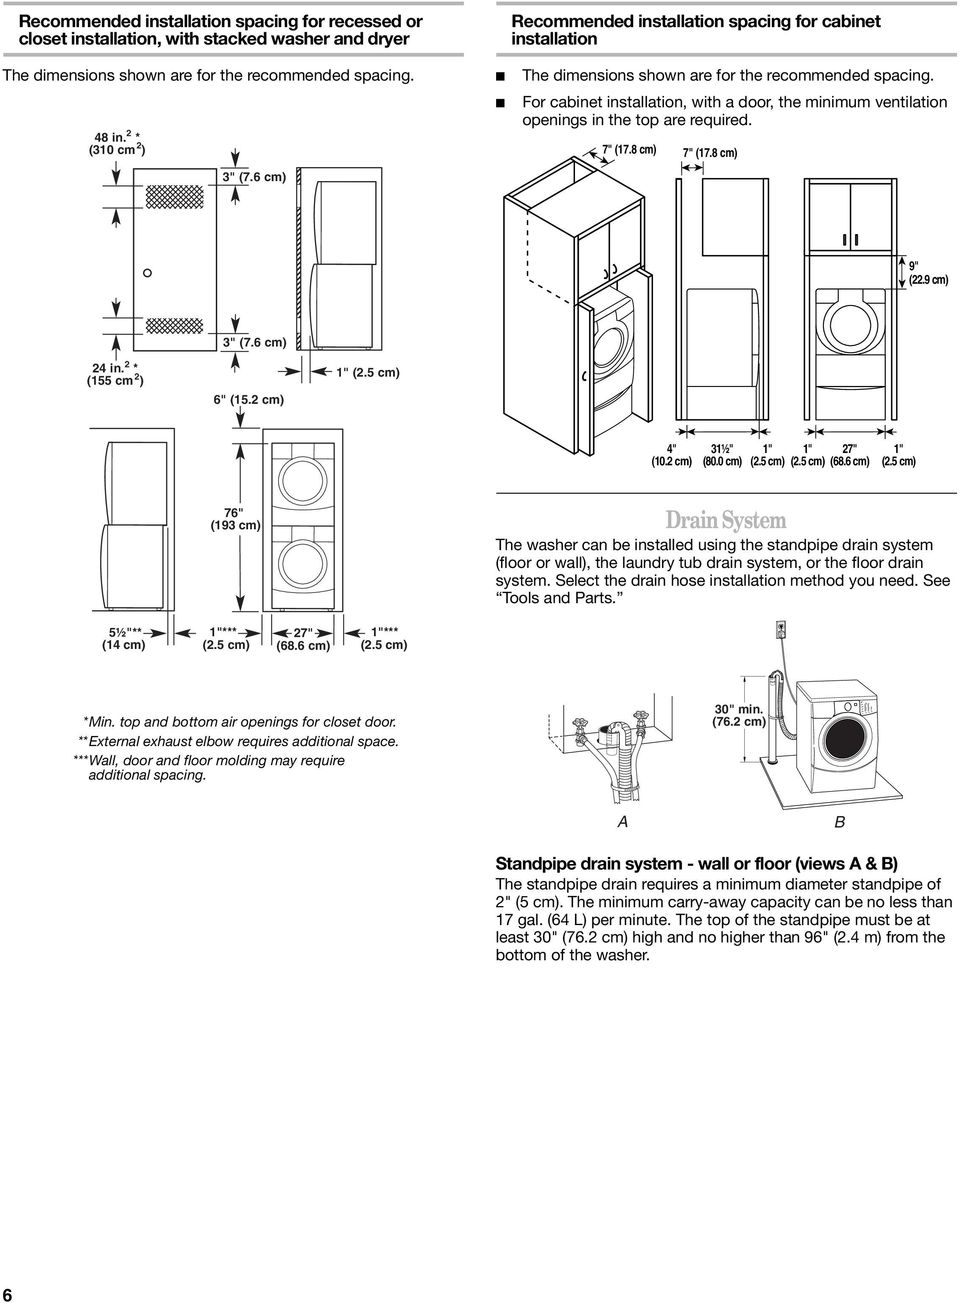 "For cabinet installation, with a door, the minimum ventilation openings in the top are required. 7"" (17.8 cm) 7"" (17.8 cm) 9"" (22.9 cm) 3"" (7.6 cm) 24 in. 2 * (155 cm 2 ) 6"" (15.2 cm) 1"" (2."